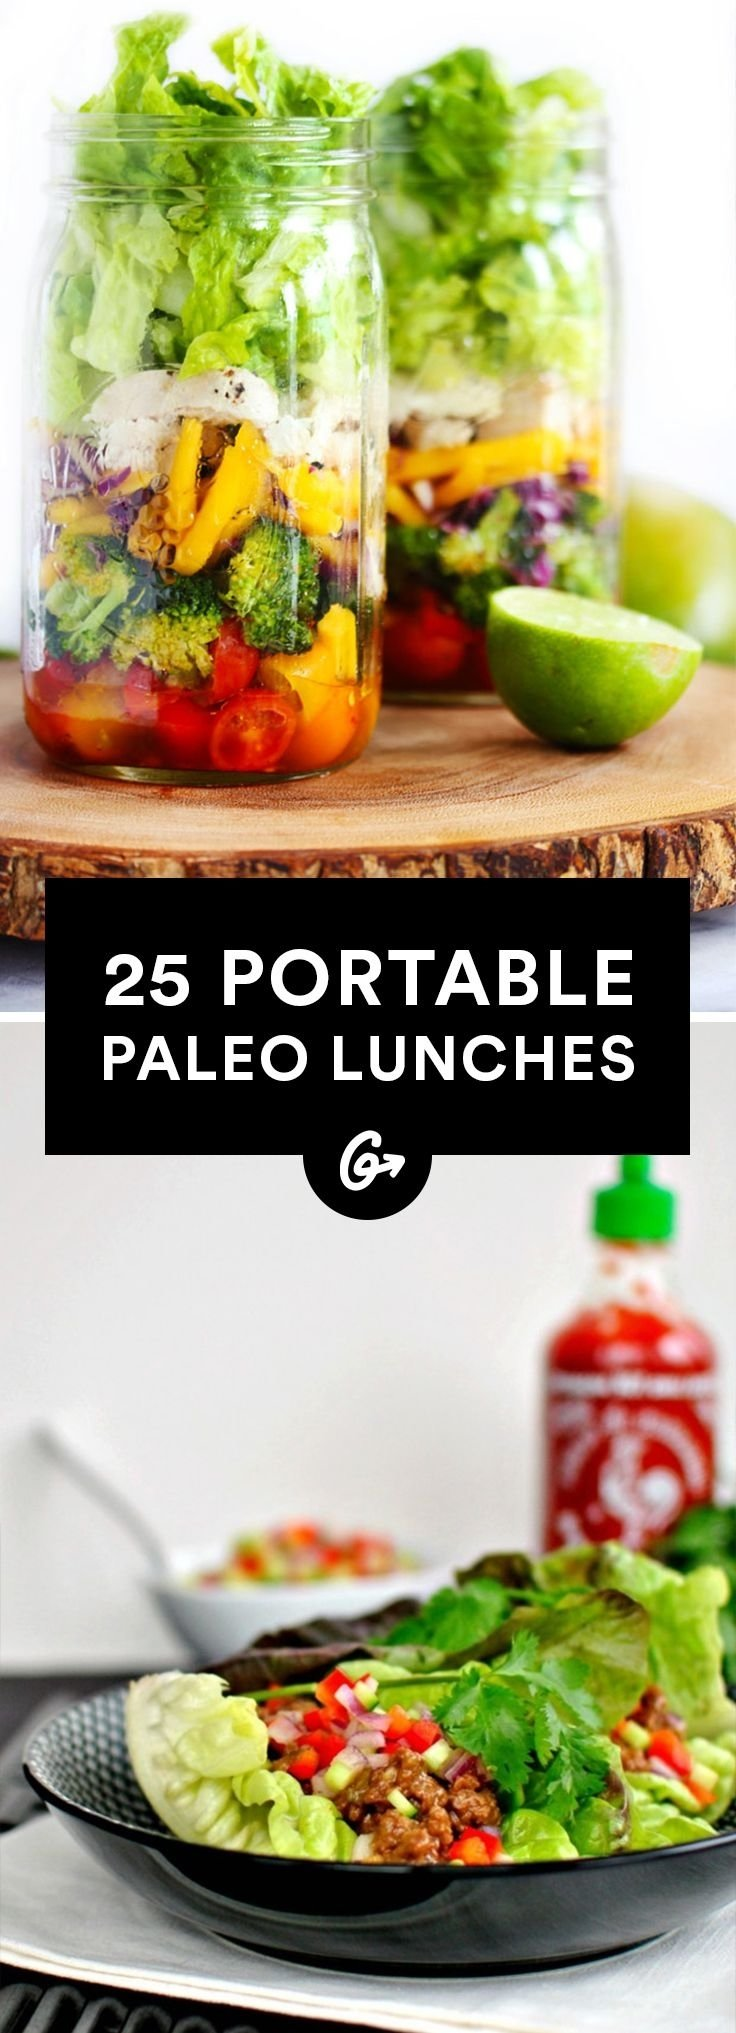 10 Lovable Paleo Lunch Ideas For Work 25 essential paleo lunch recipes paleo plat principal et principal 2020